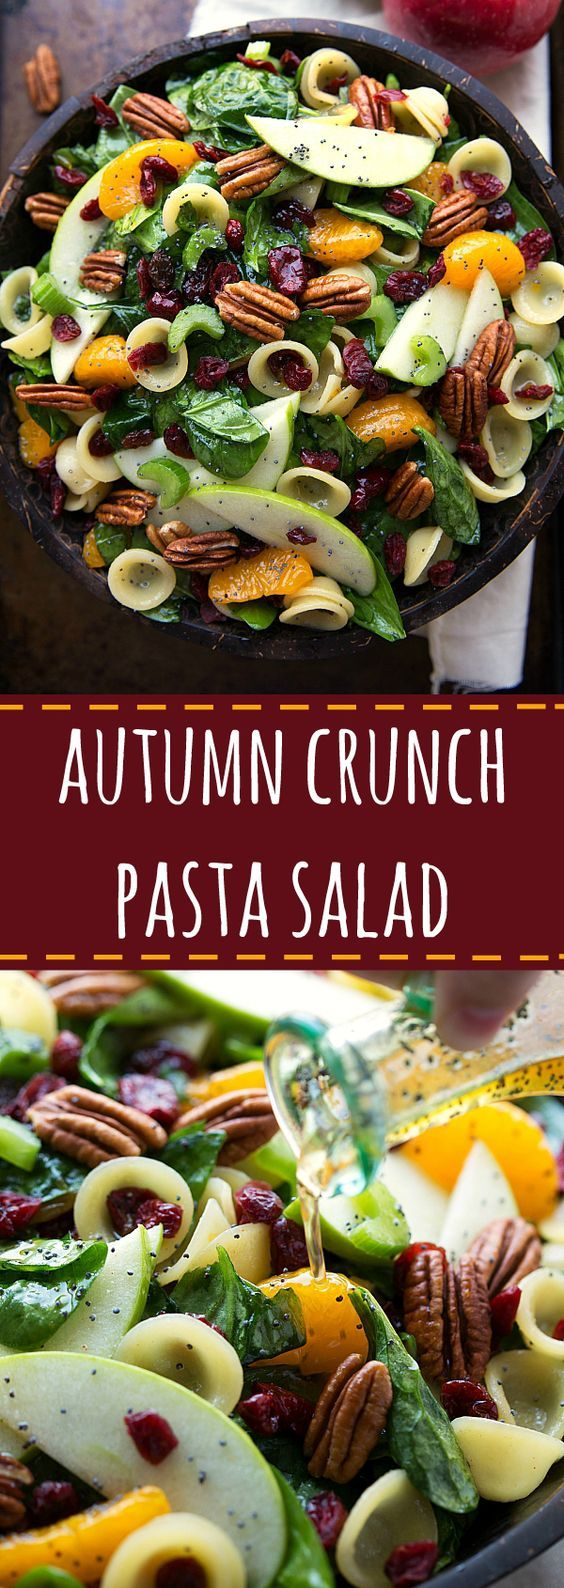 awesome Autumn Crunch Pasta Salad